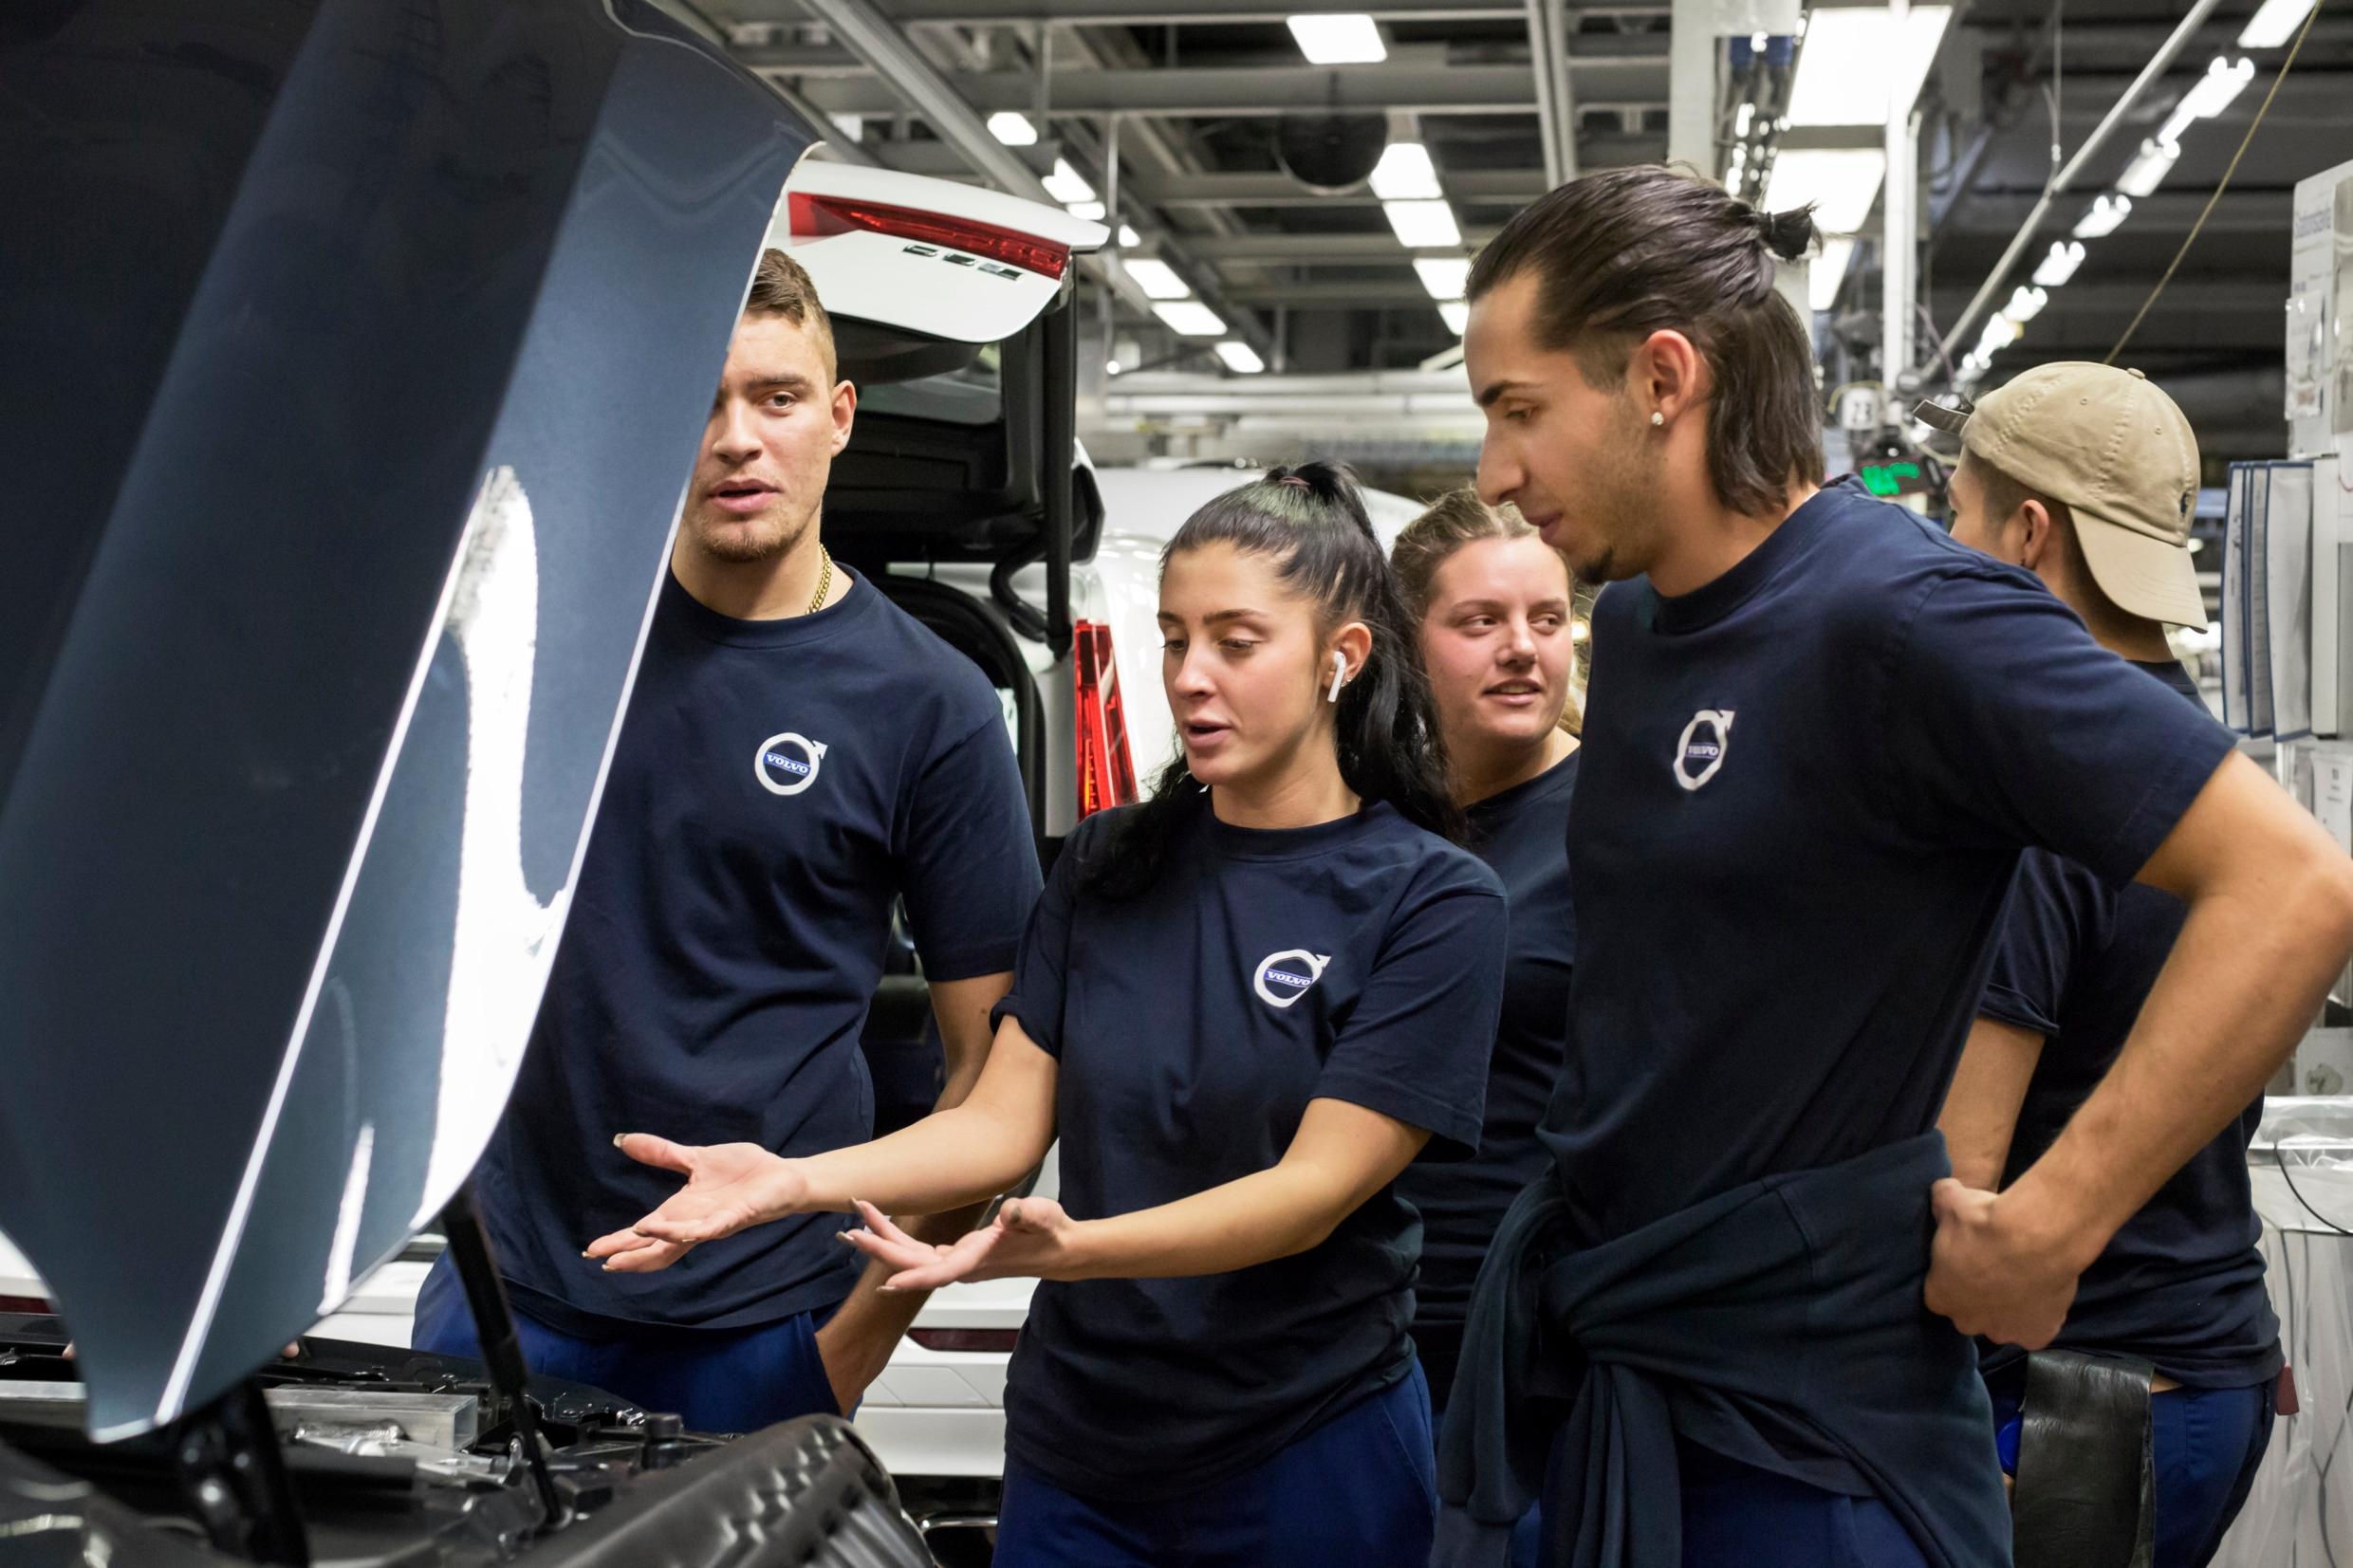 A crowd of workers stand around a car on a factory floor. A woman is gesturing at the engine compartment.